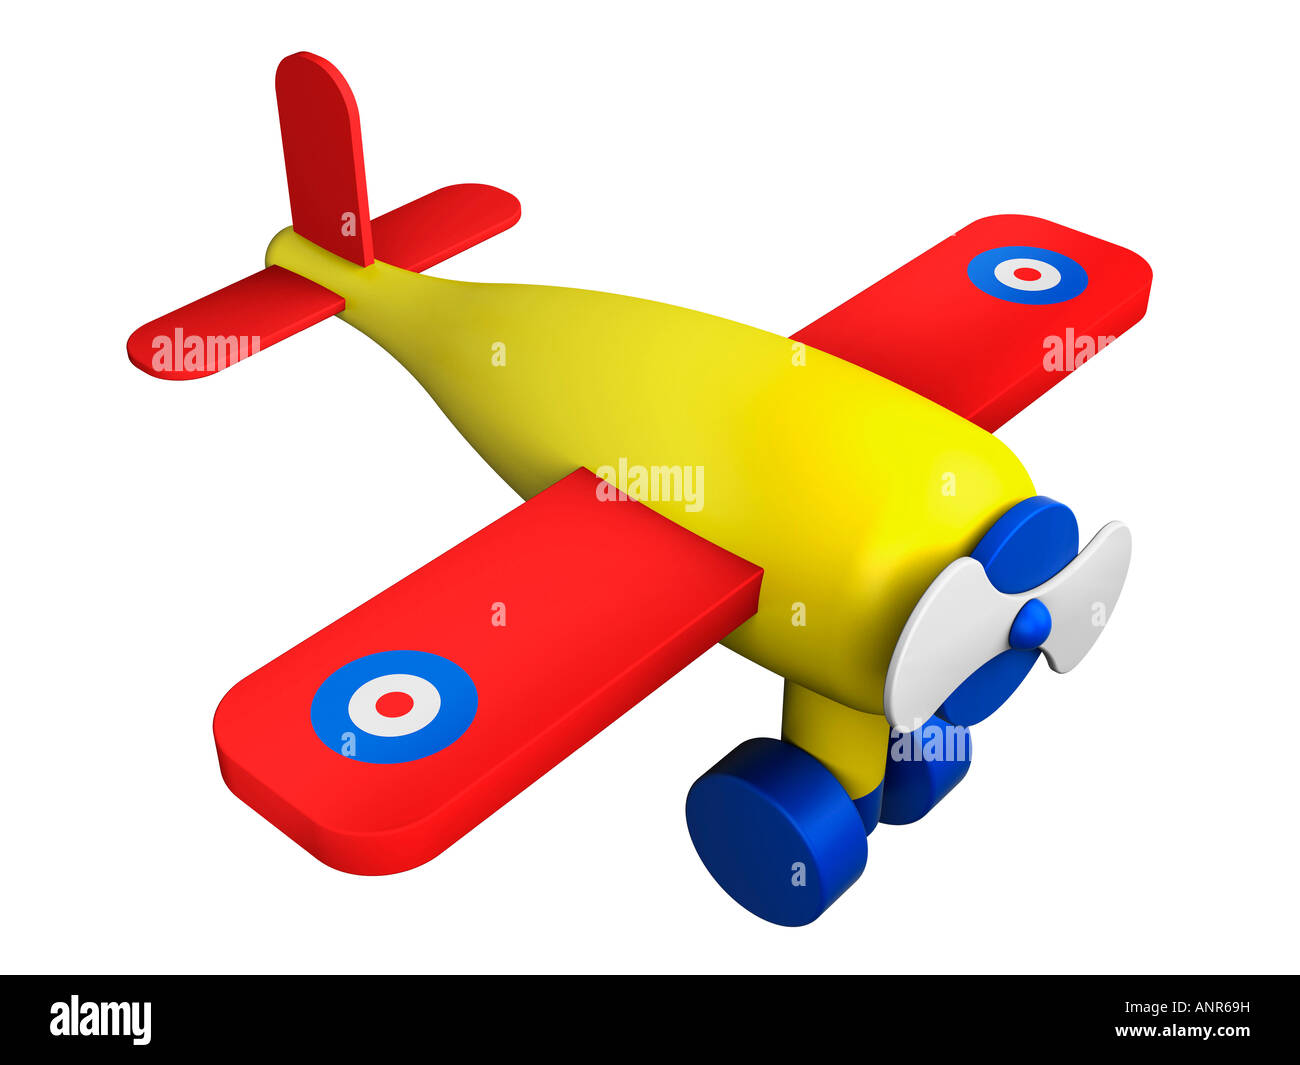 Toy Wooden Plane Stock Photos & Toy Wooden Plane Stock Images - Alamy